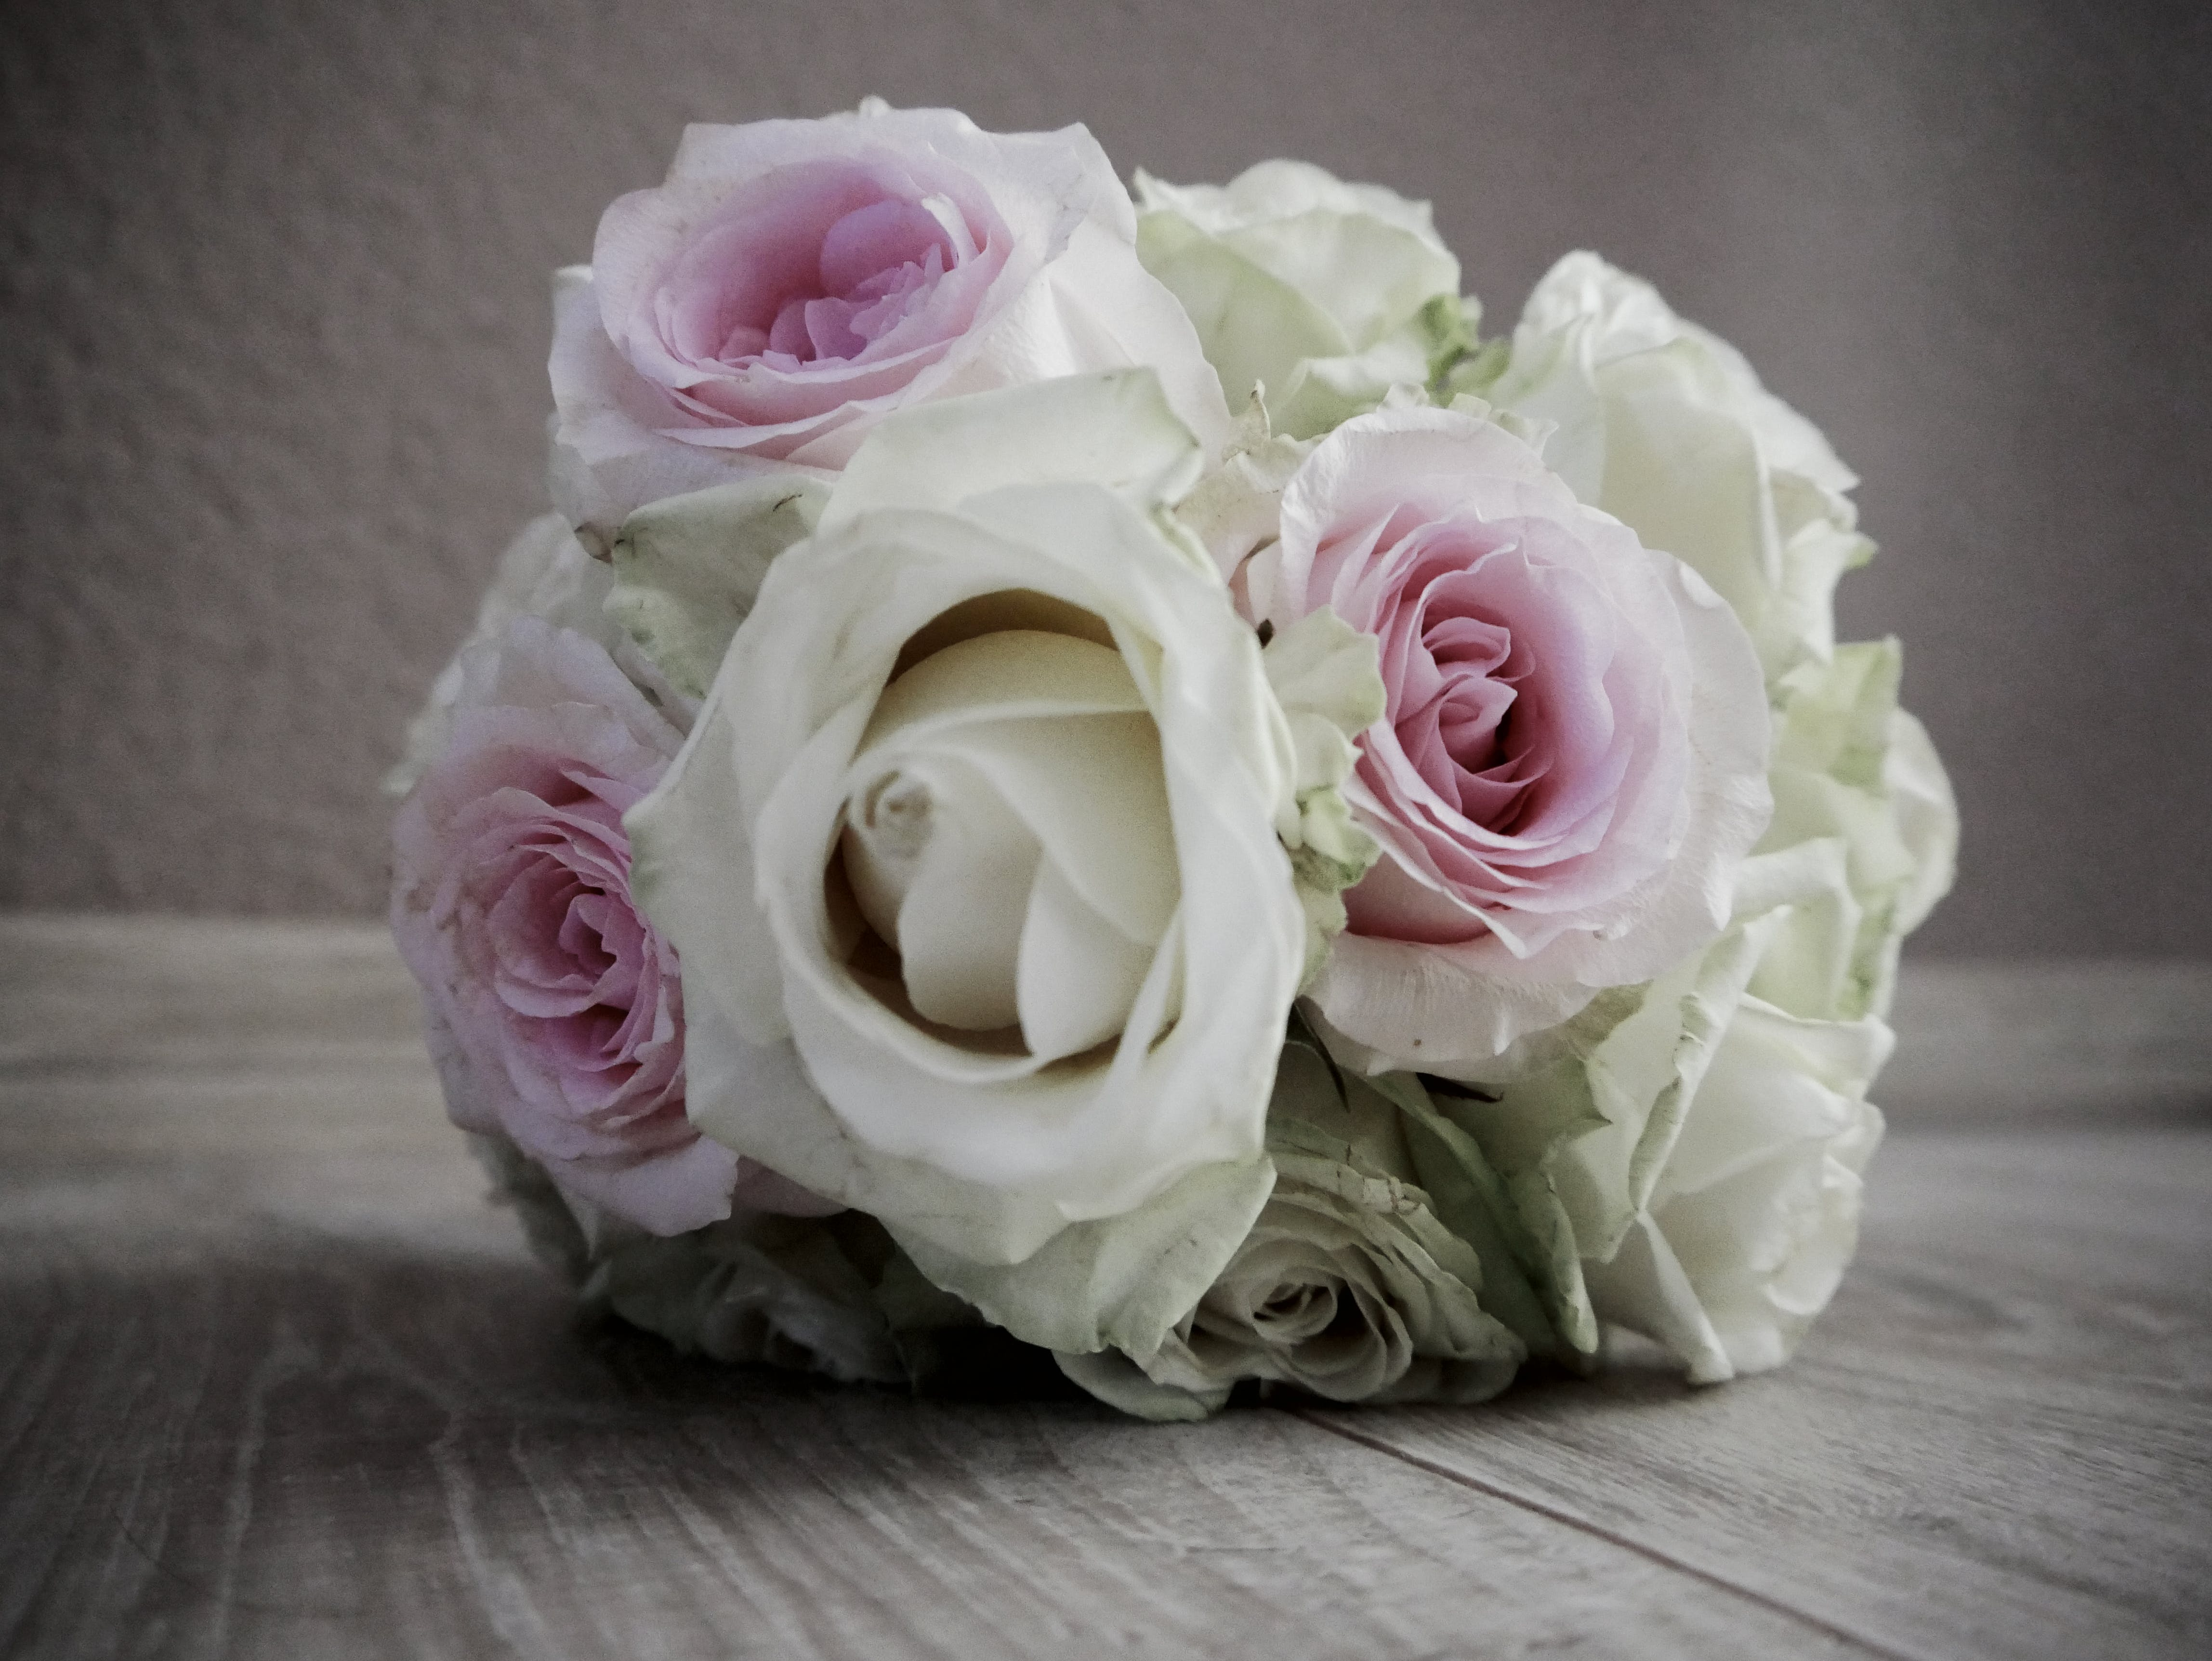 Free stock photo of bunch of flowers, love, pink roses, romance